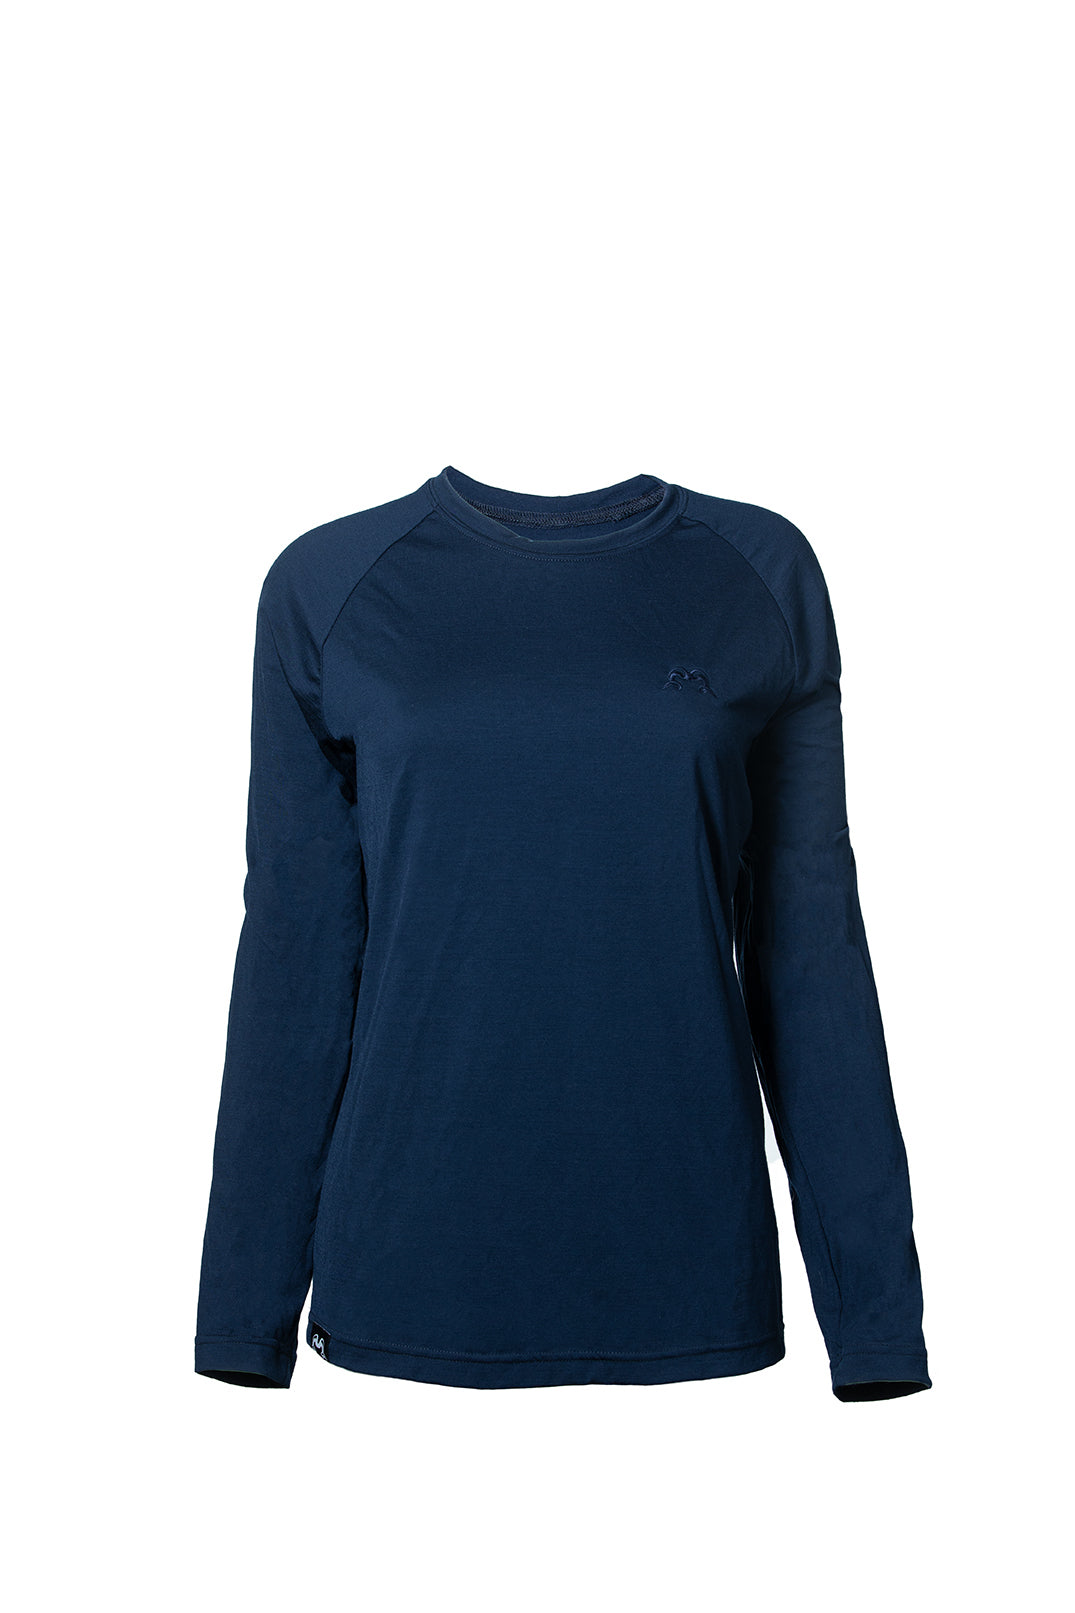 True Fleece Women's merino wool 200 long sleeve base layer top - Navy/Pink